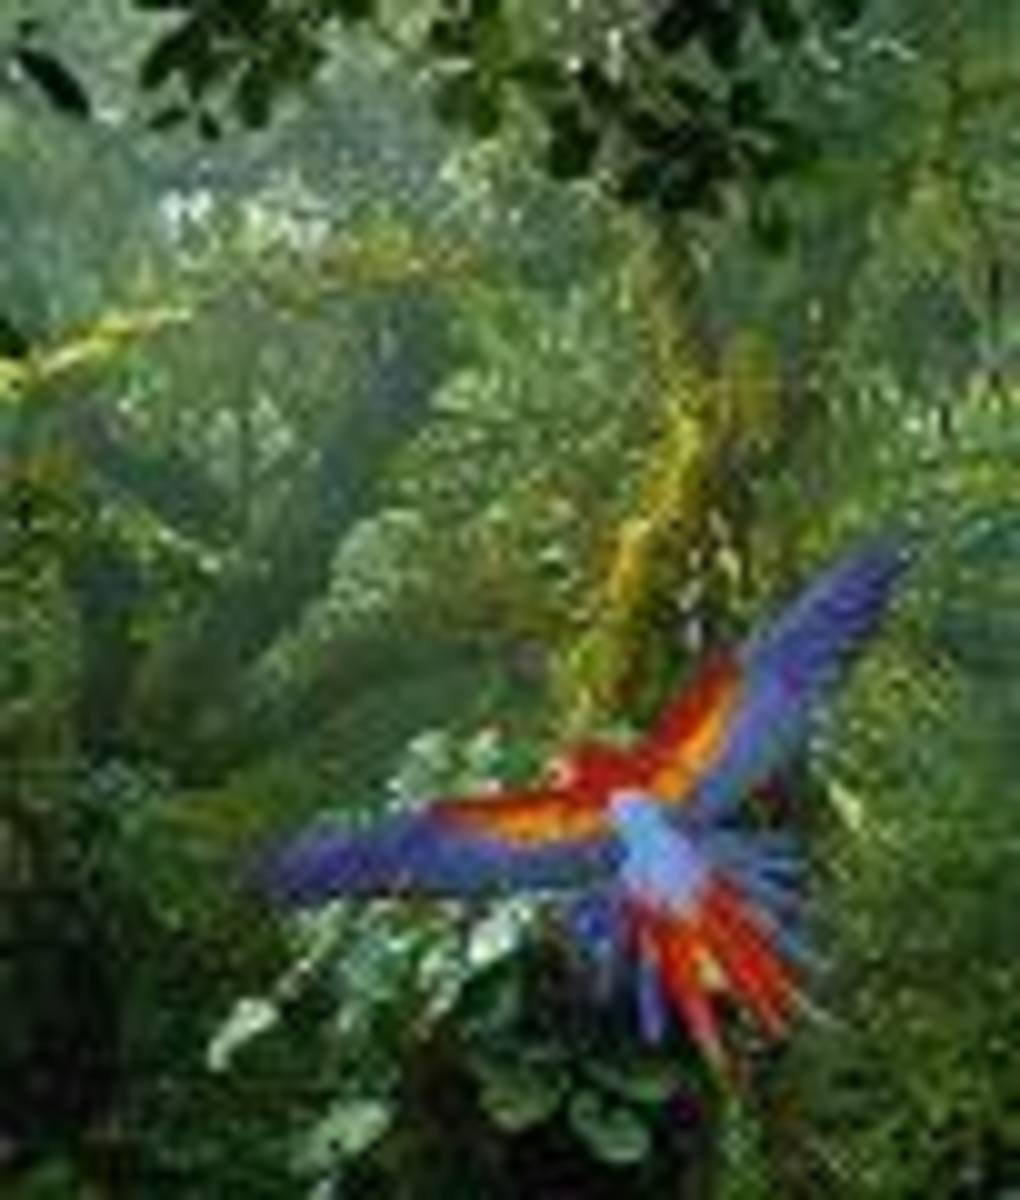 Scarlet Macaw.  One of the really spectacular birds you might get to see.